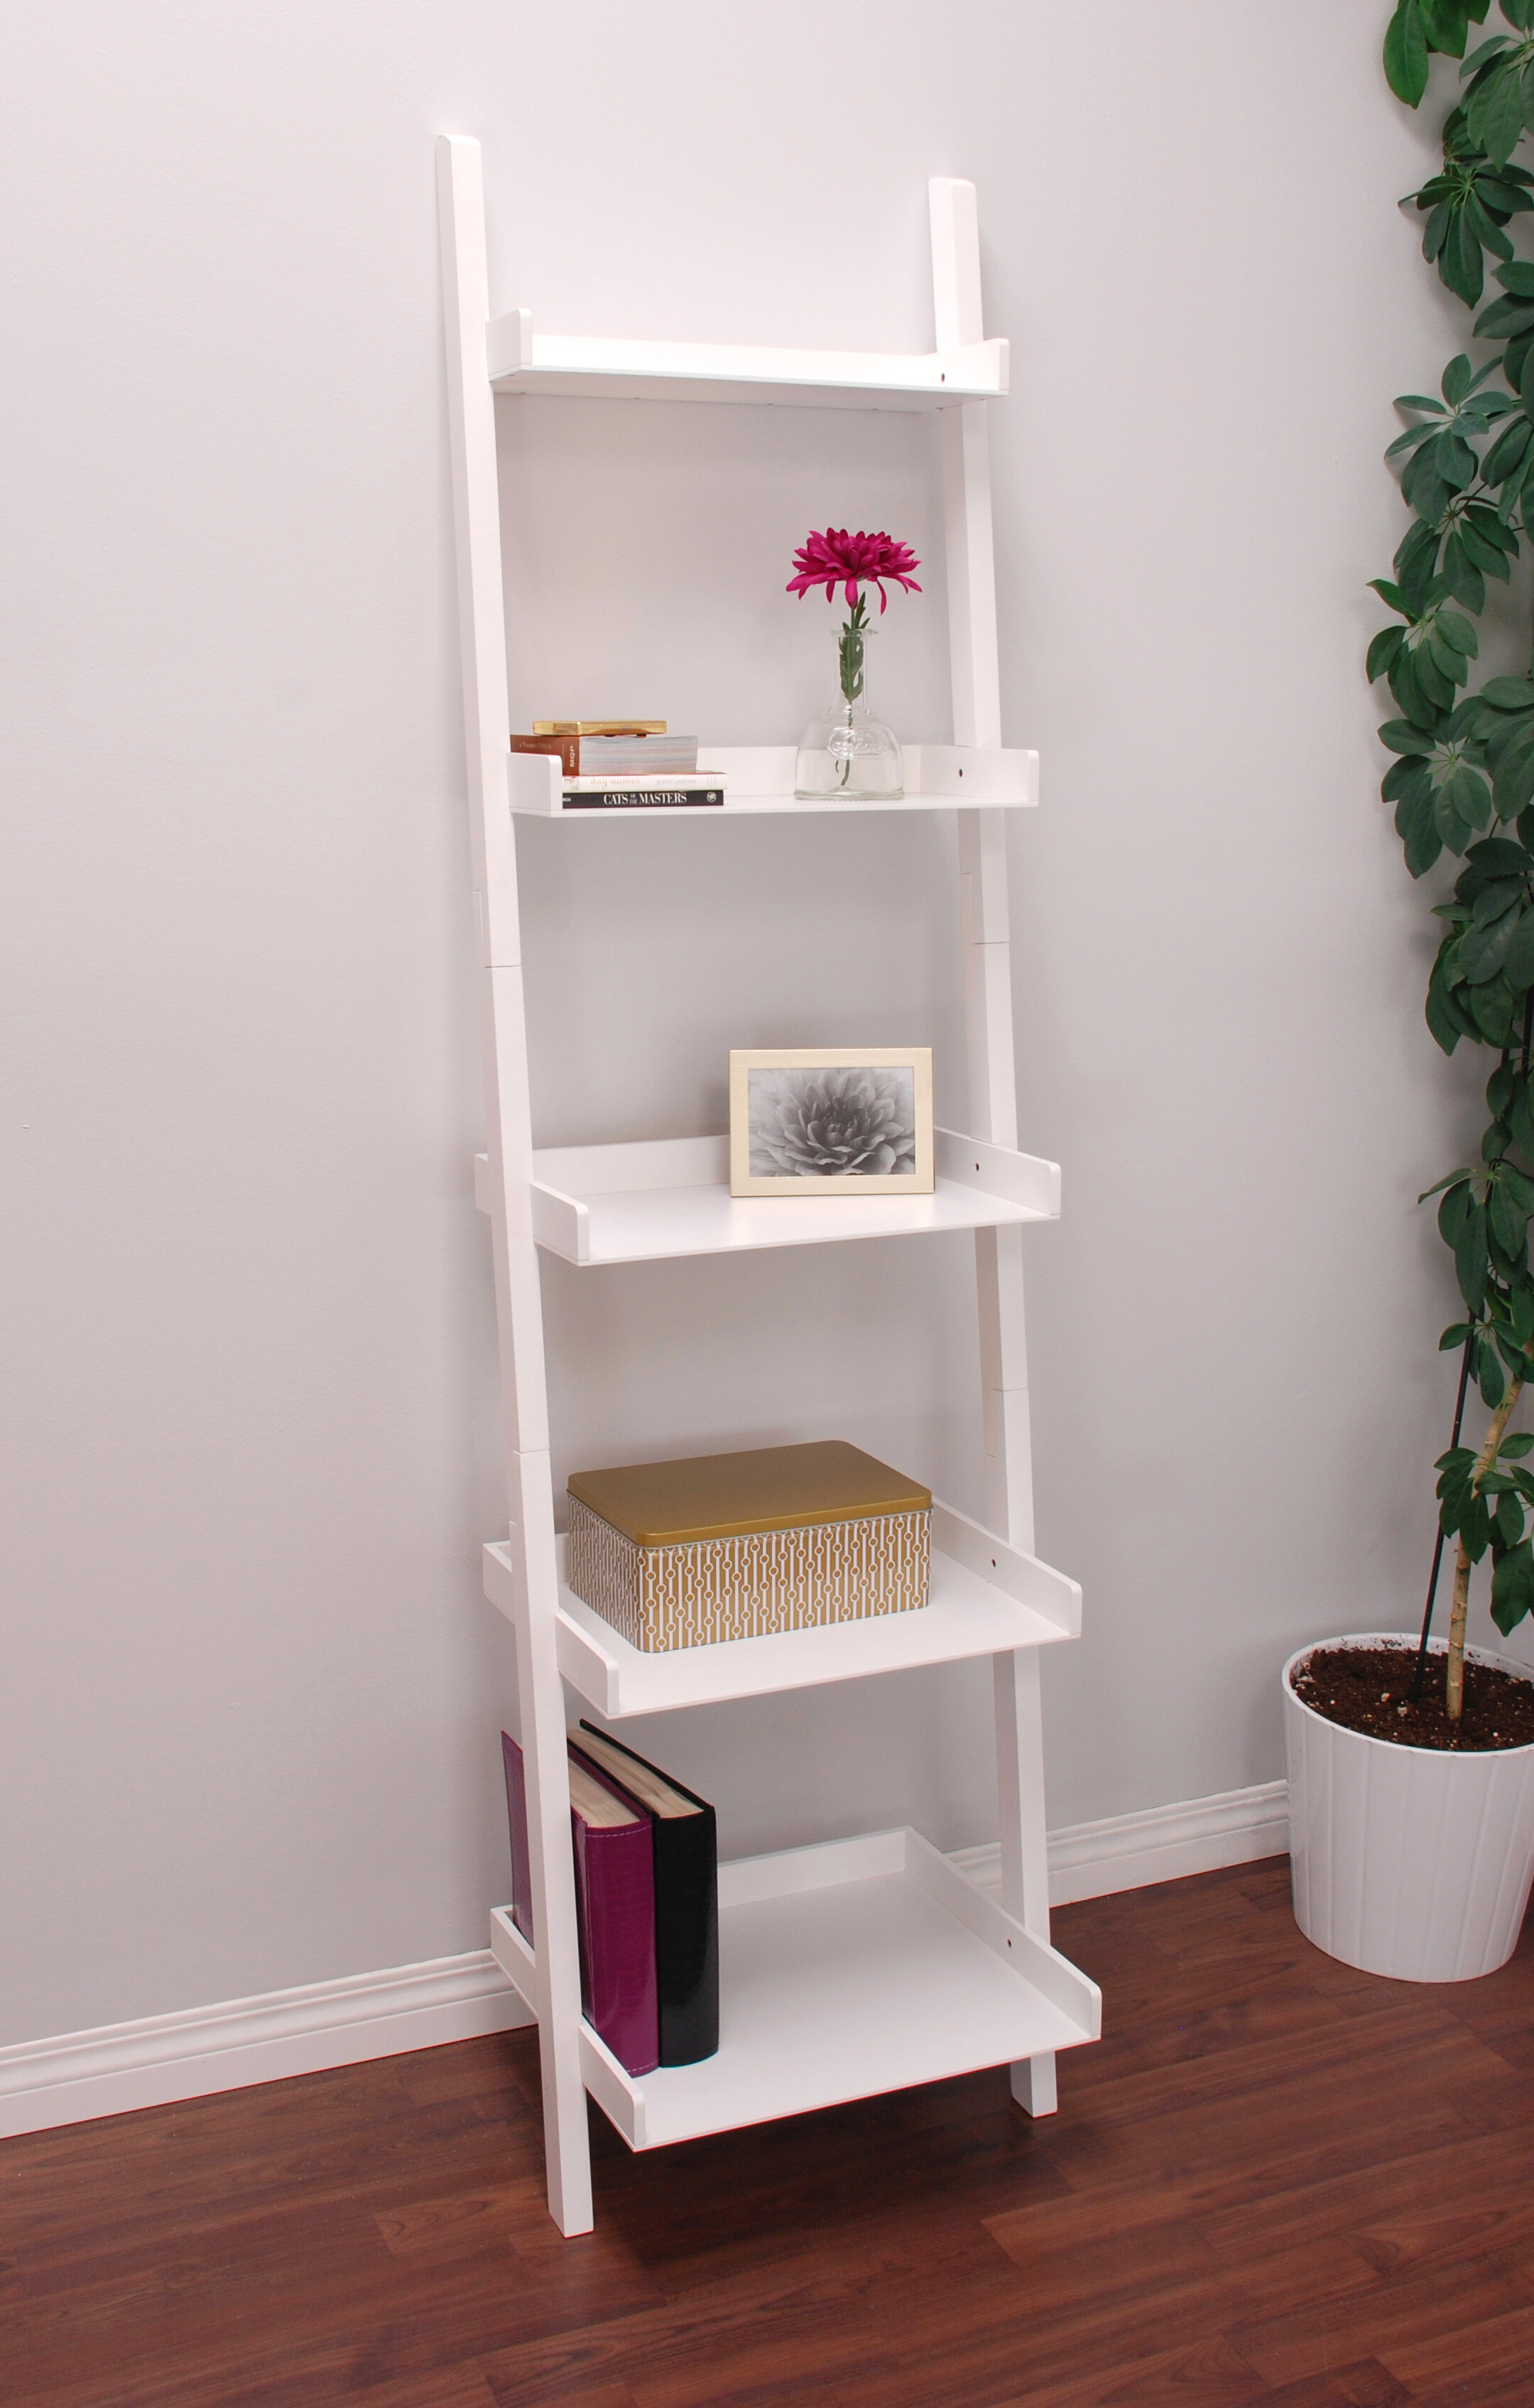 shelf drawers bookshelf black livingroom ladder leaning well wooden white storage as monarch lovely artwork inch with bookcase cappuccino